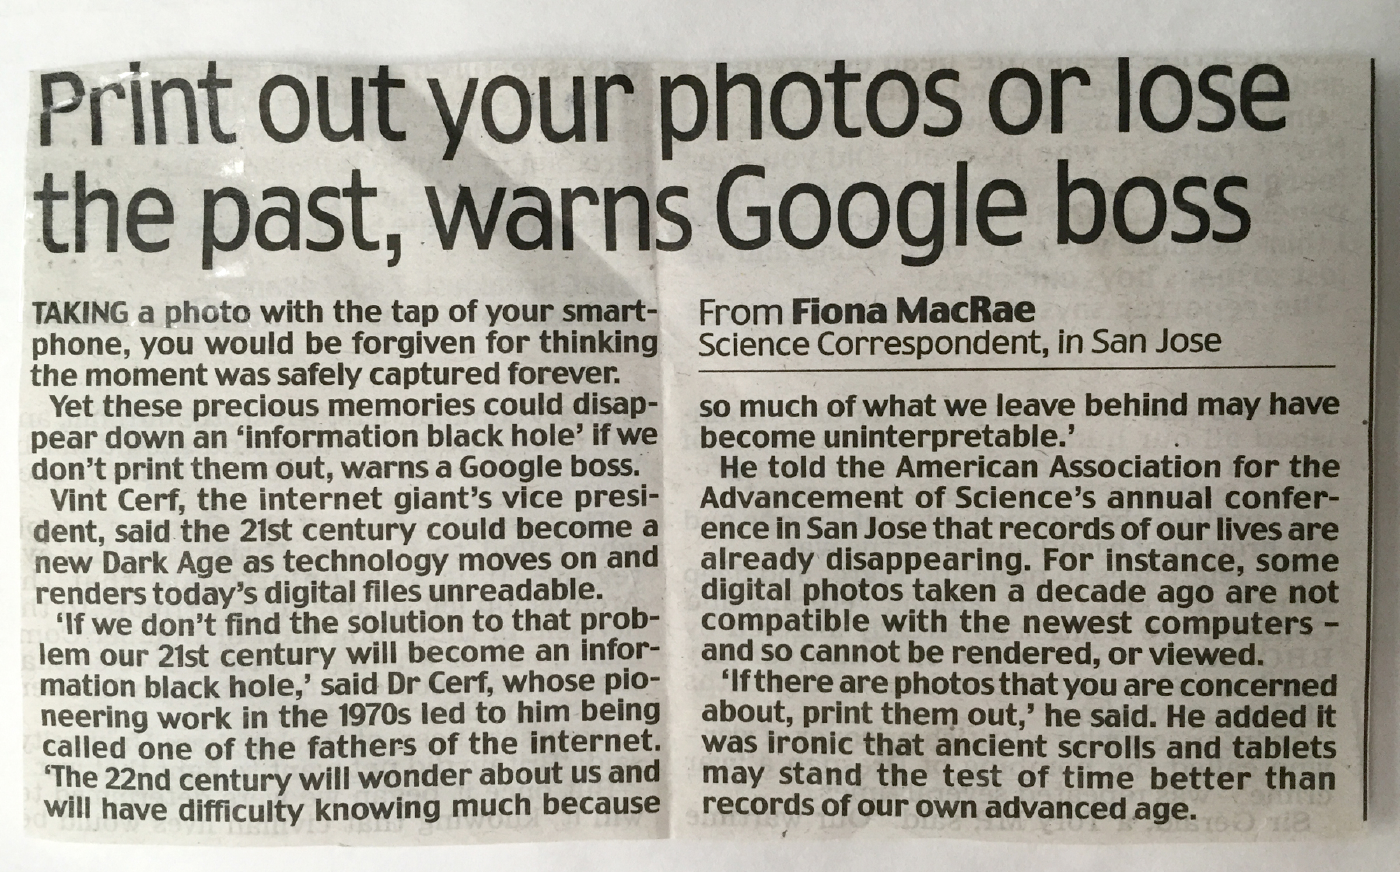 A warning from Google to print your photographs